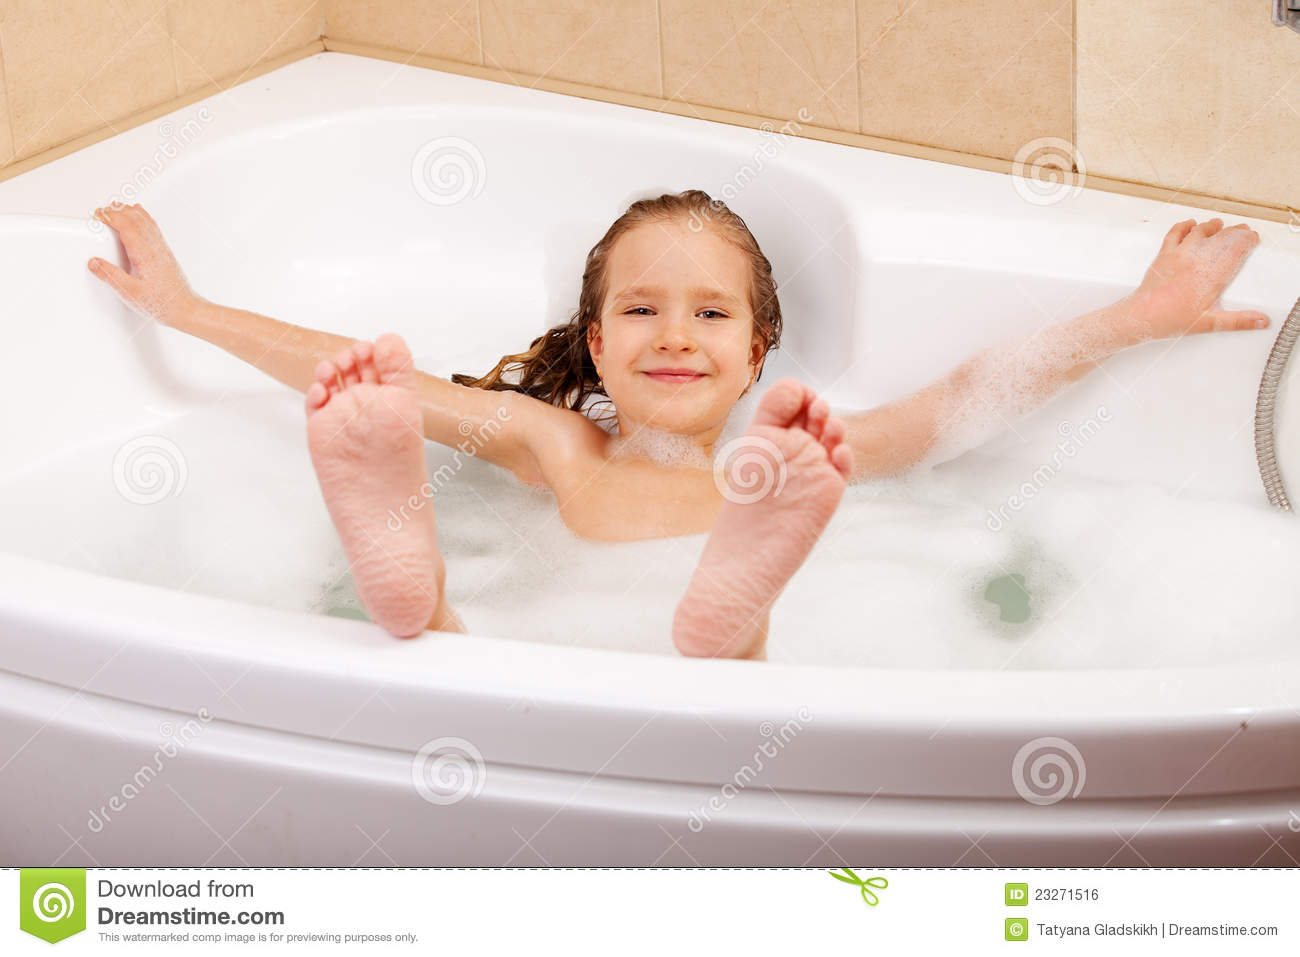 Child in the bathtub stock photo. Image of person, bubbles - 23271516